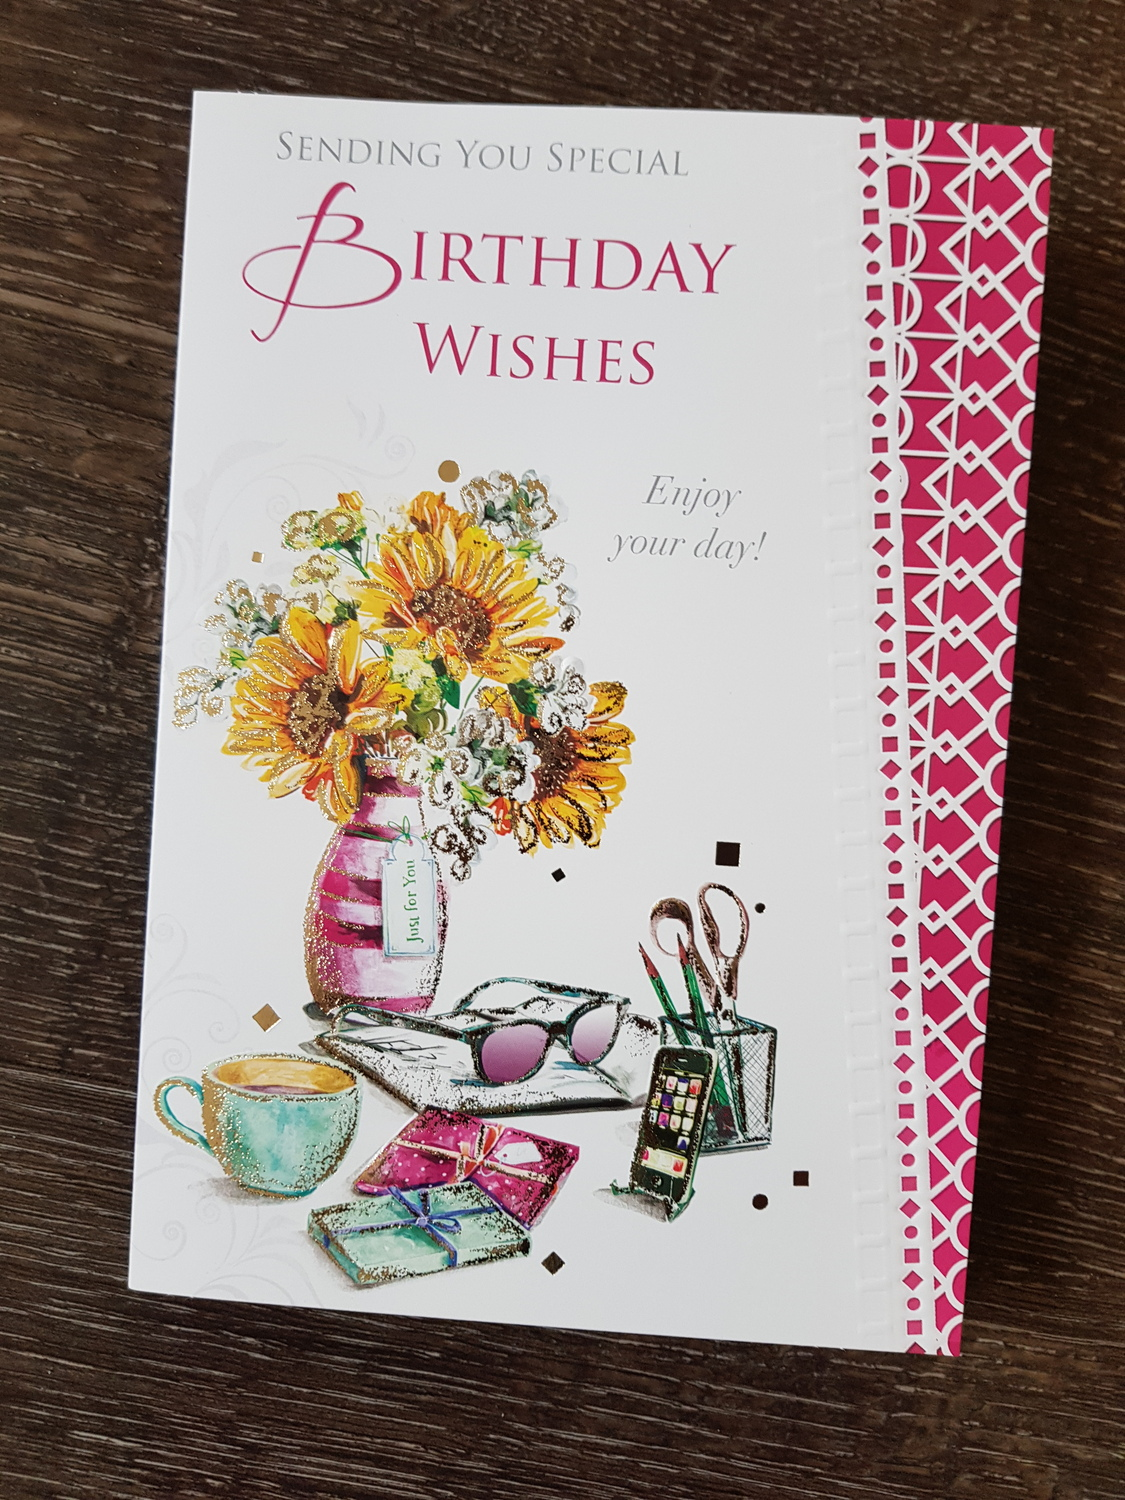 Birthday wishes flowers cup card remember that card greeting birthday wishes flowers cup card izmirmasajfo